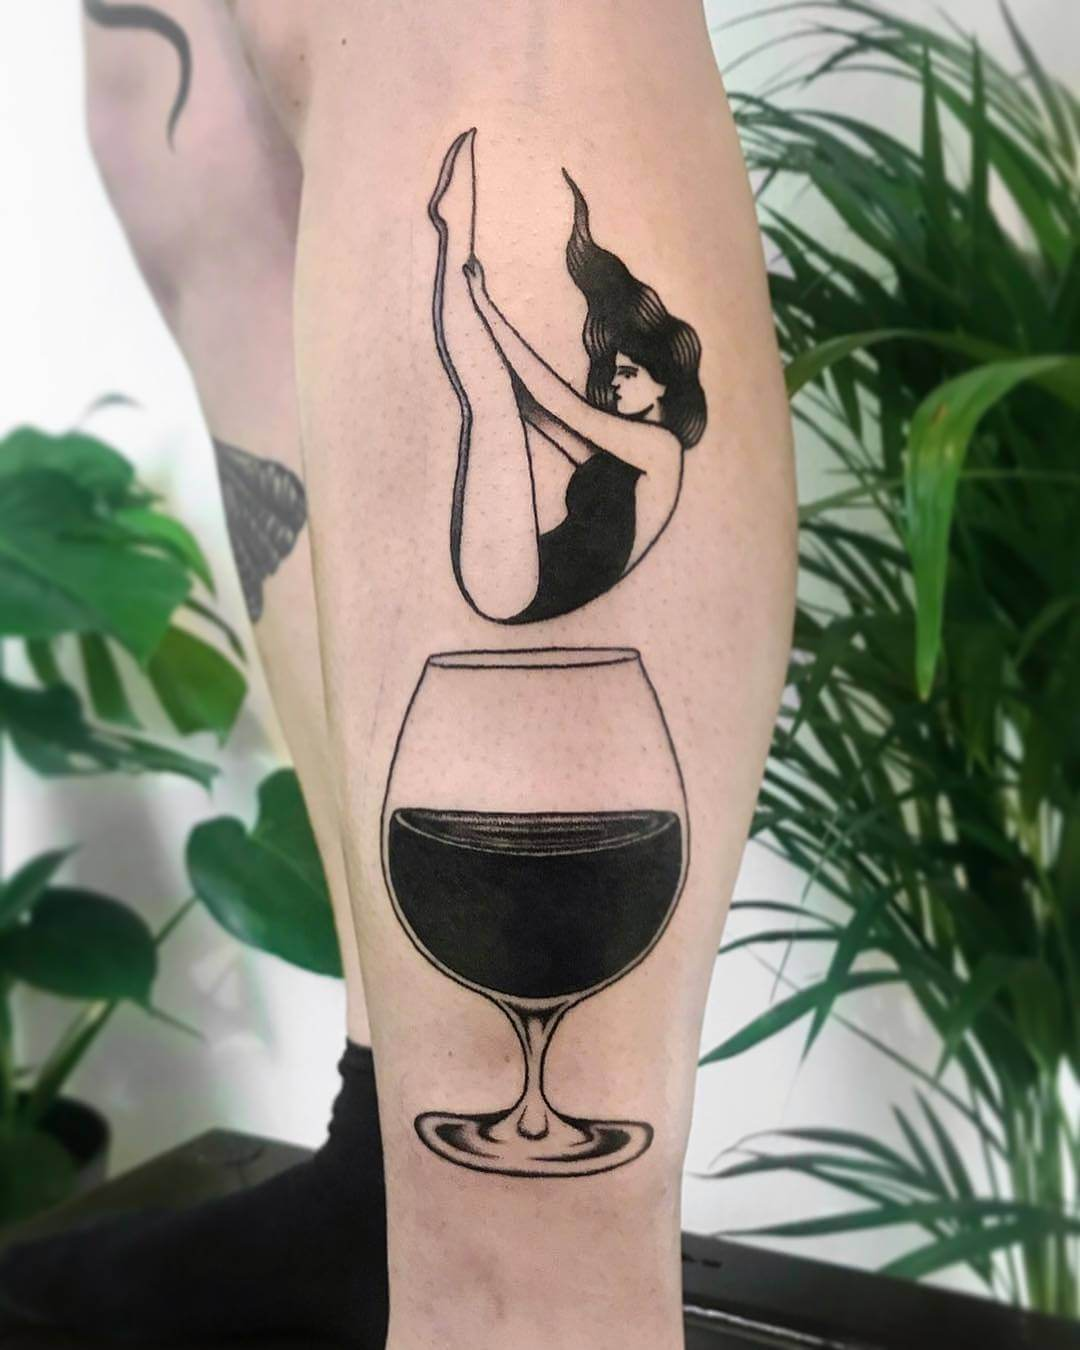 Woman falling in wine tattoo